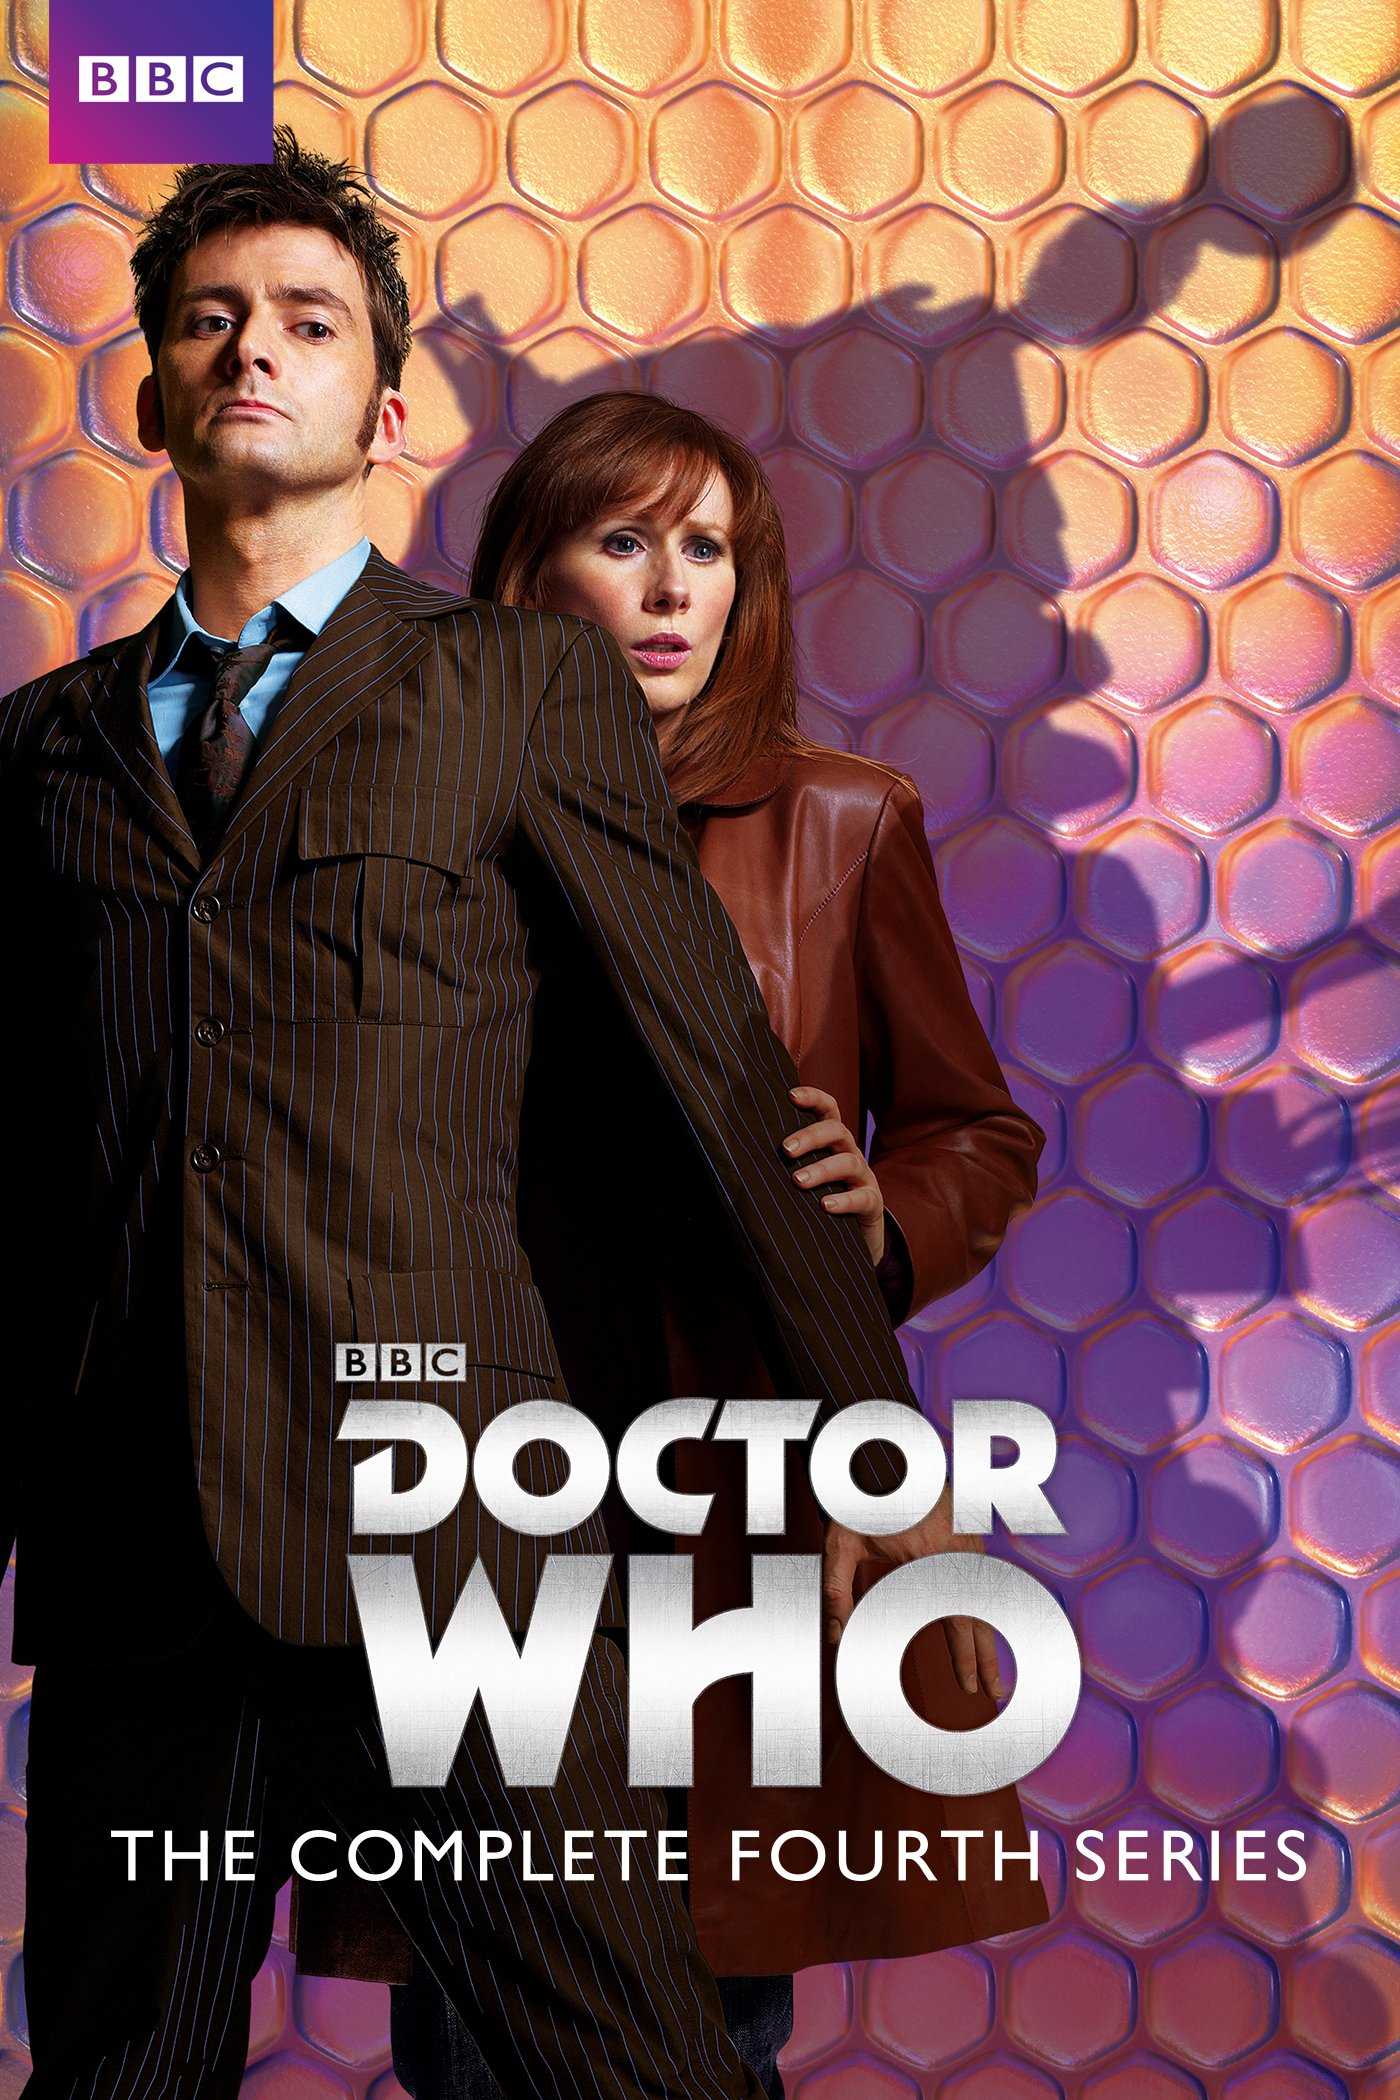 Doctor Who Series 4 - television series review - MySF Reviews